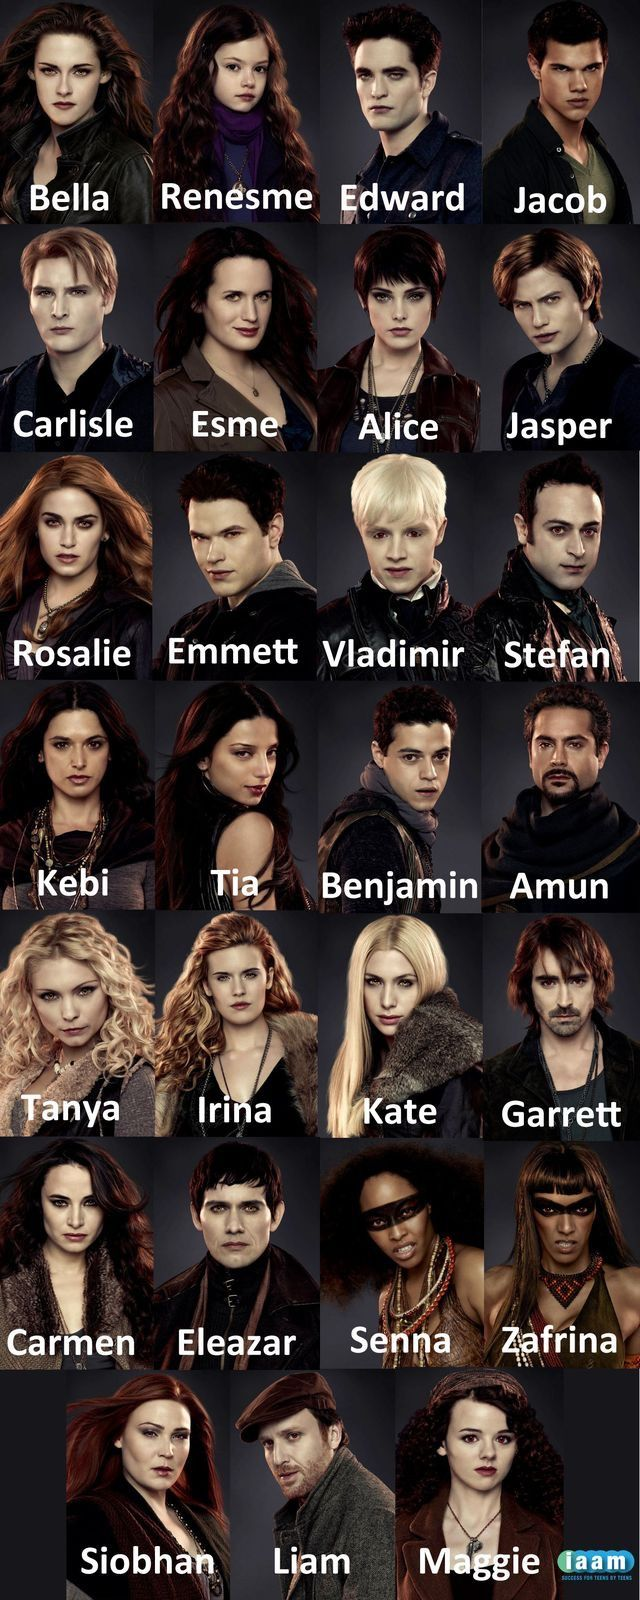 Bella, Renesme, Edward, Jacob, Carlisle, Esme, Alice, Jasper